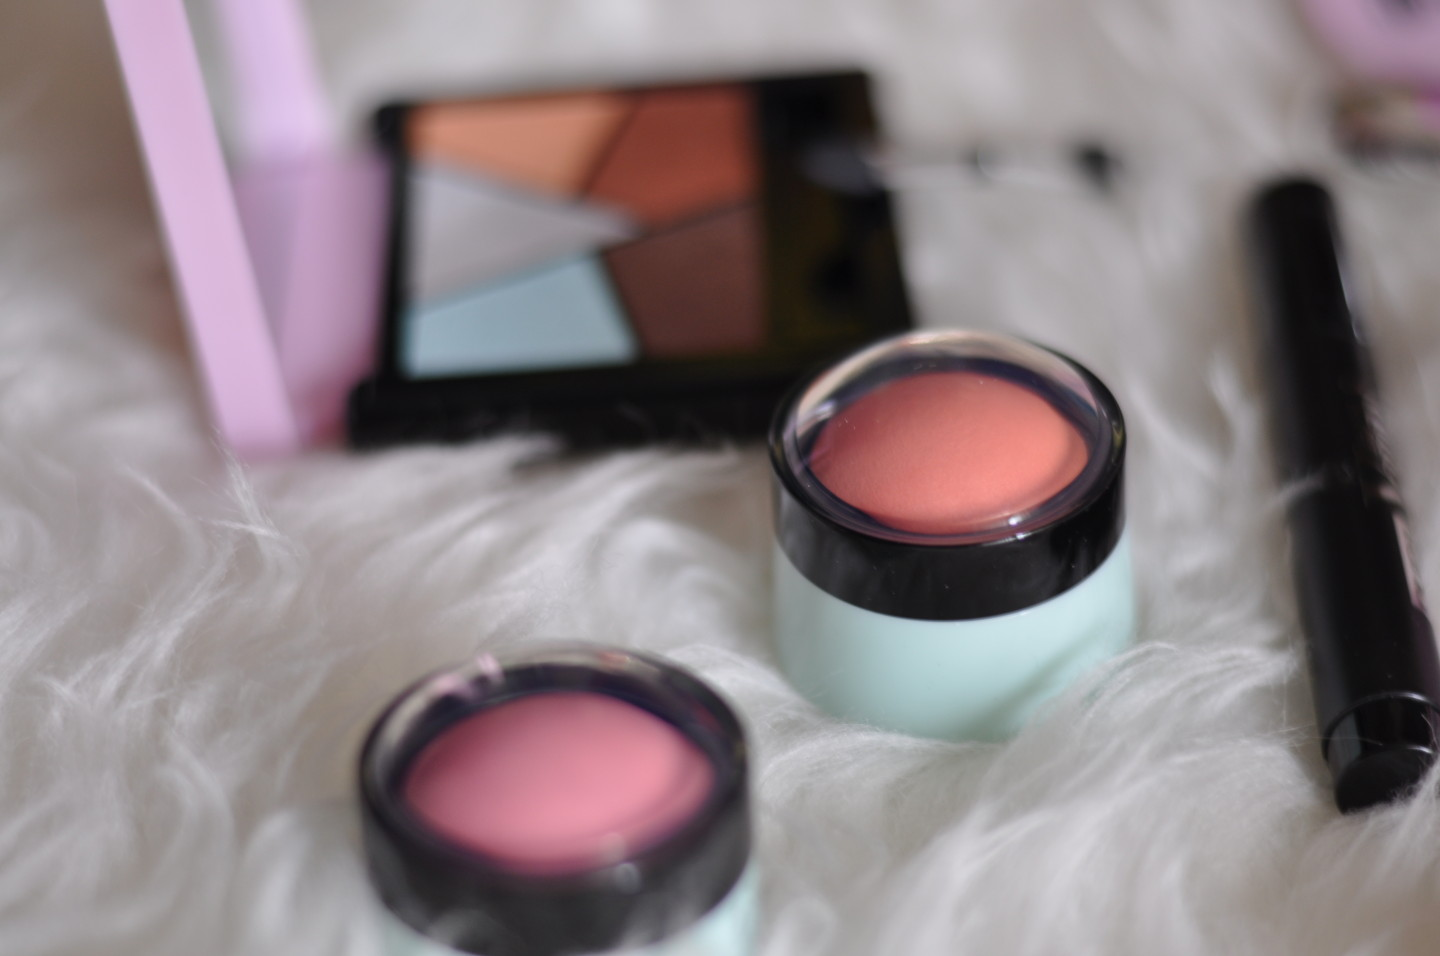 pupa-collezione-primavera-2015-makeup-valentina-coco-fashion-blogger-blush